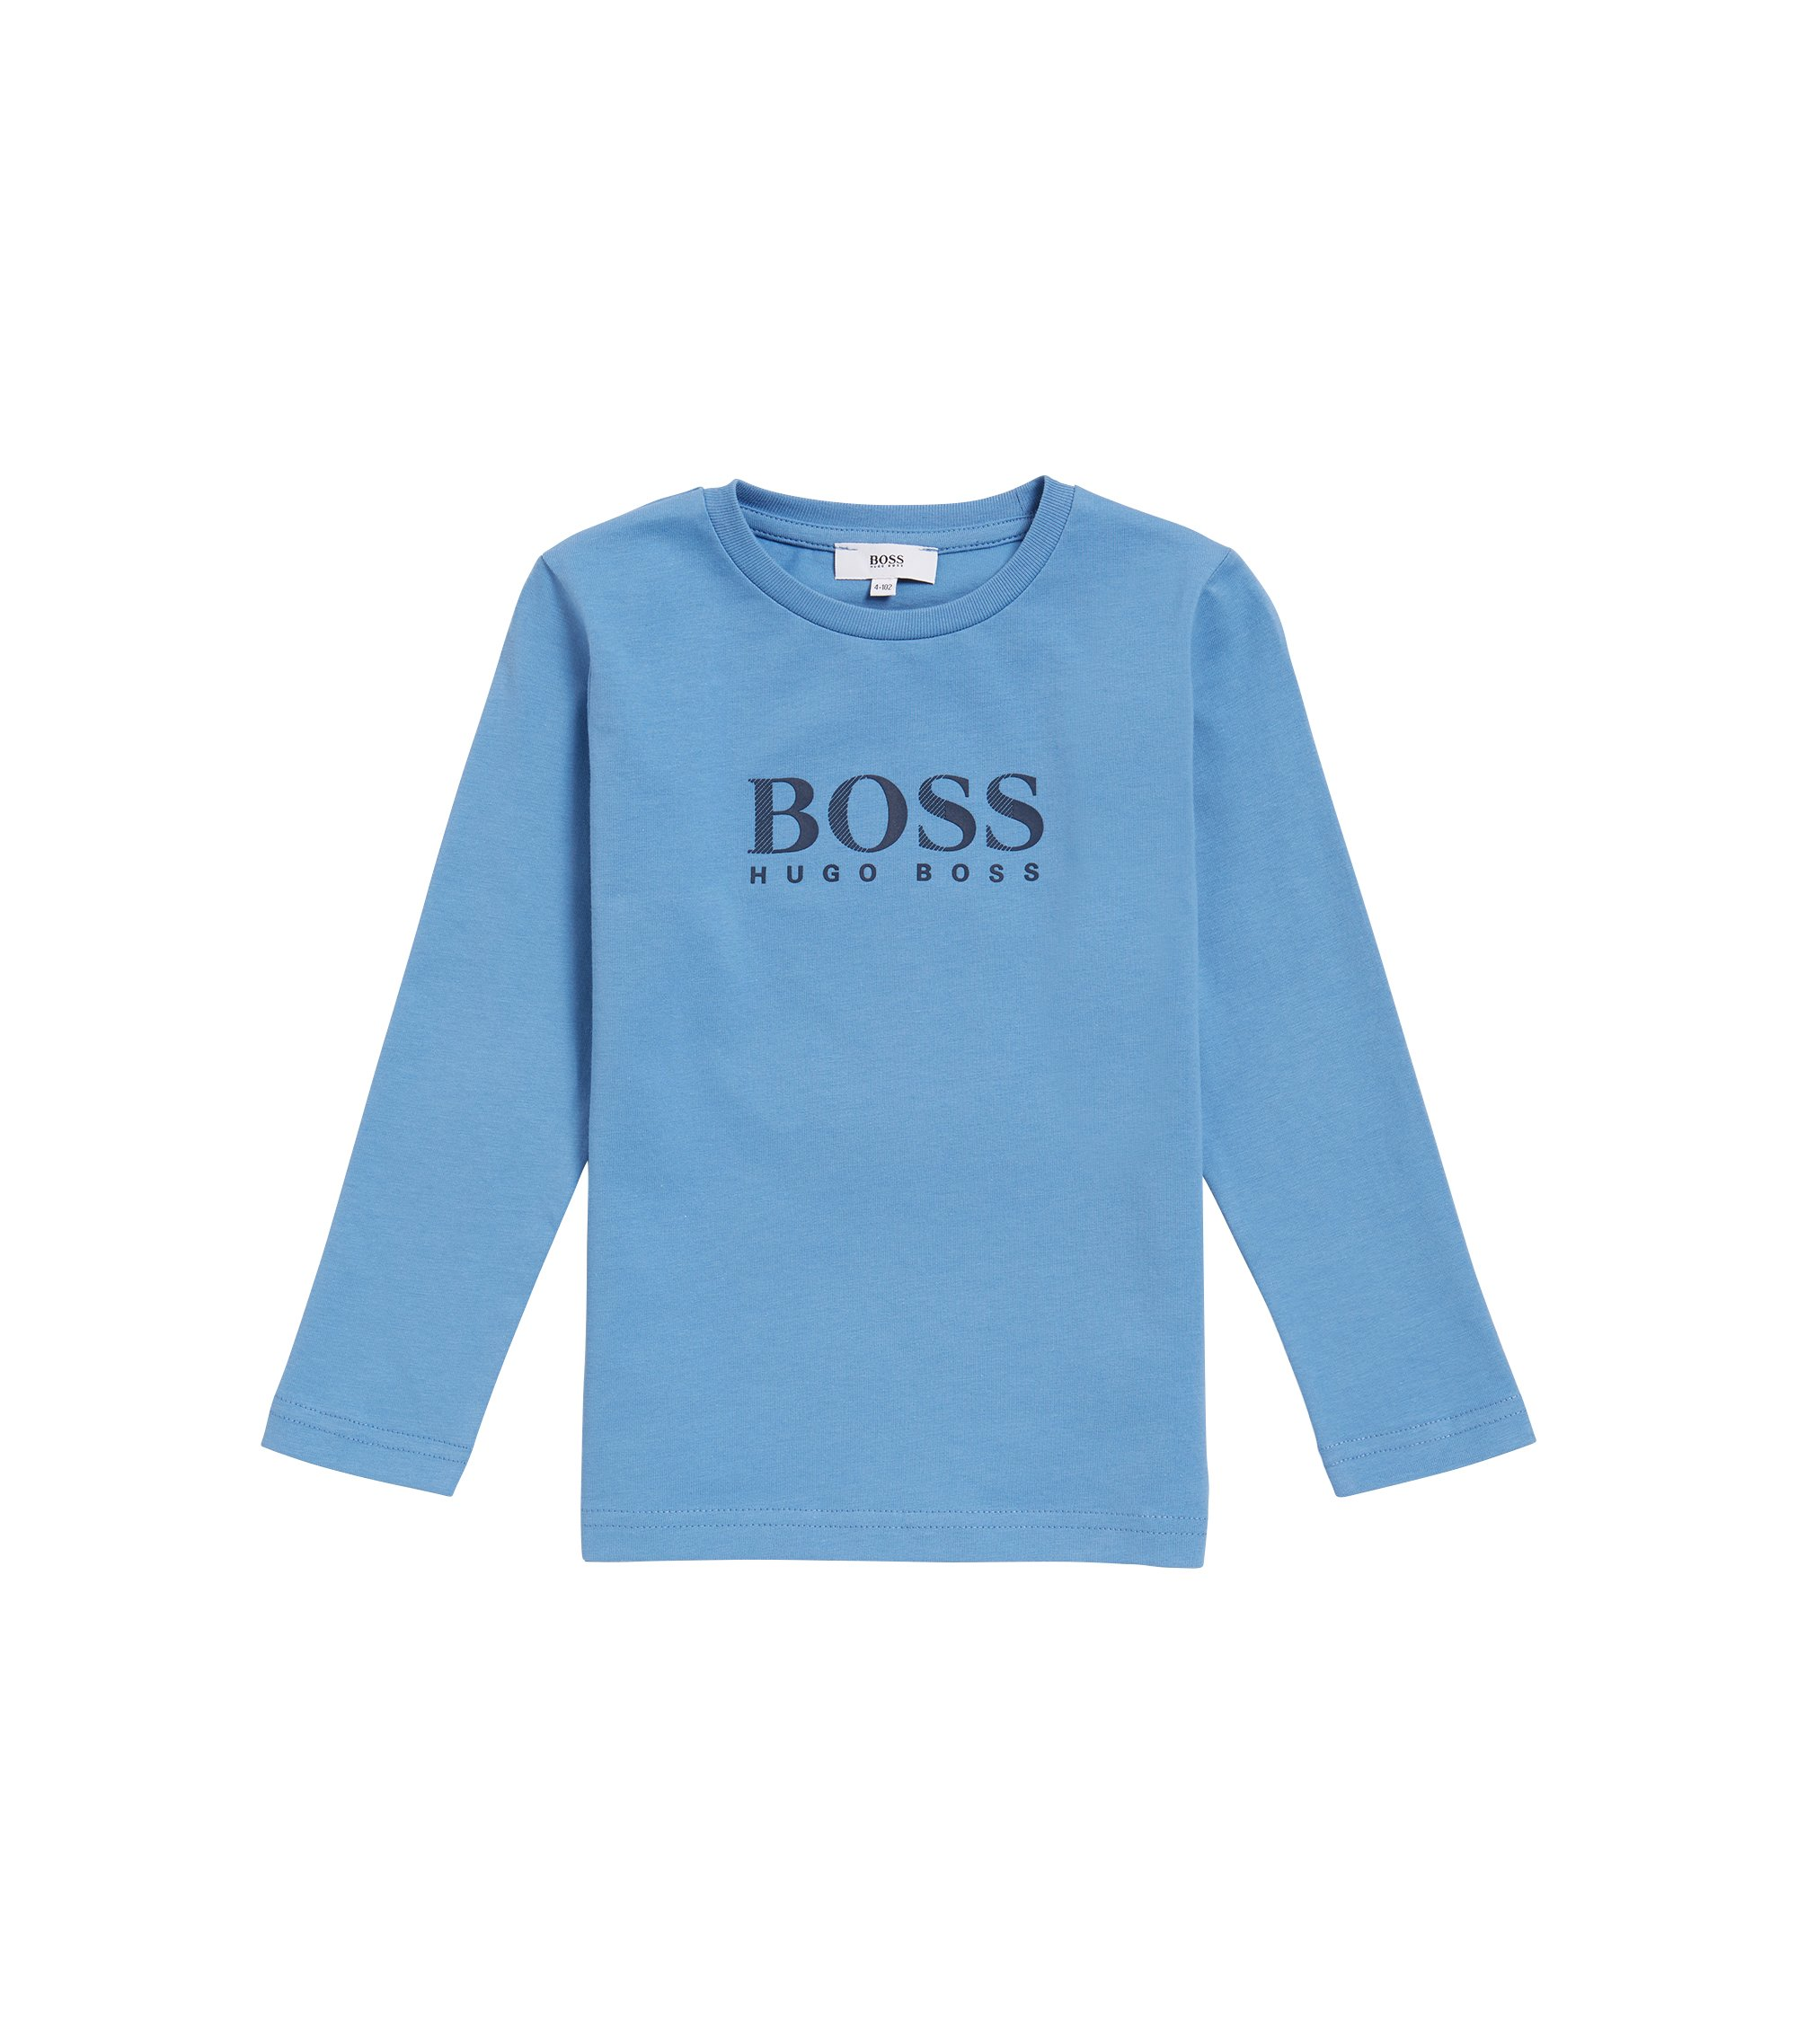 Kids' long-sleeved logo T-shirt in cotton jersey, Light Blue